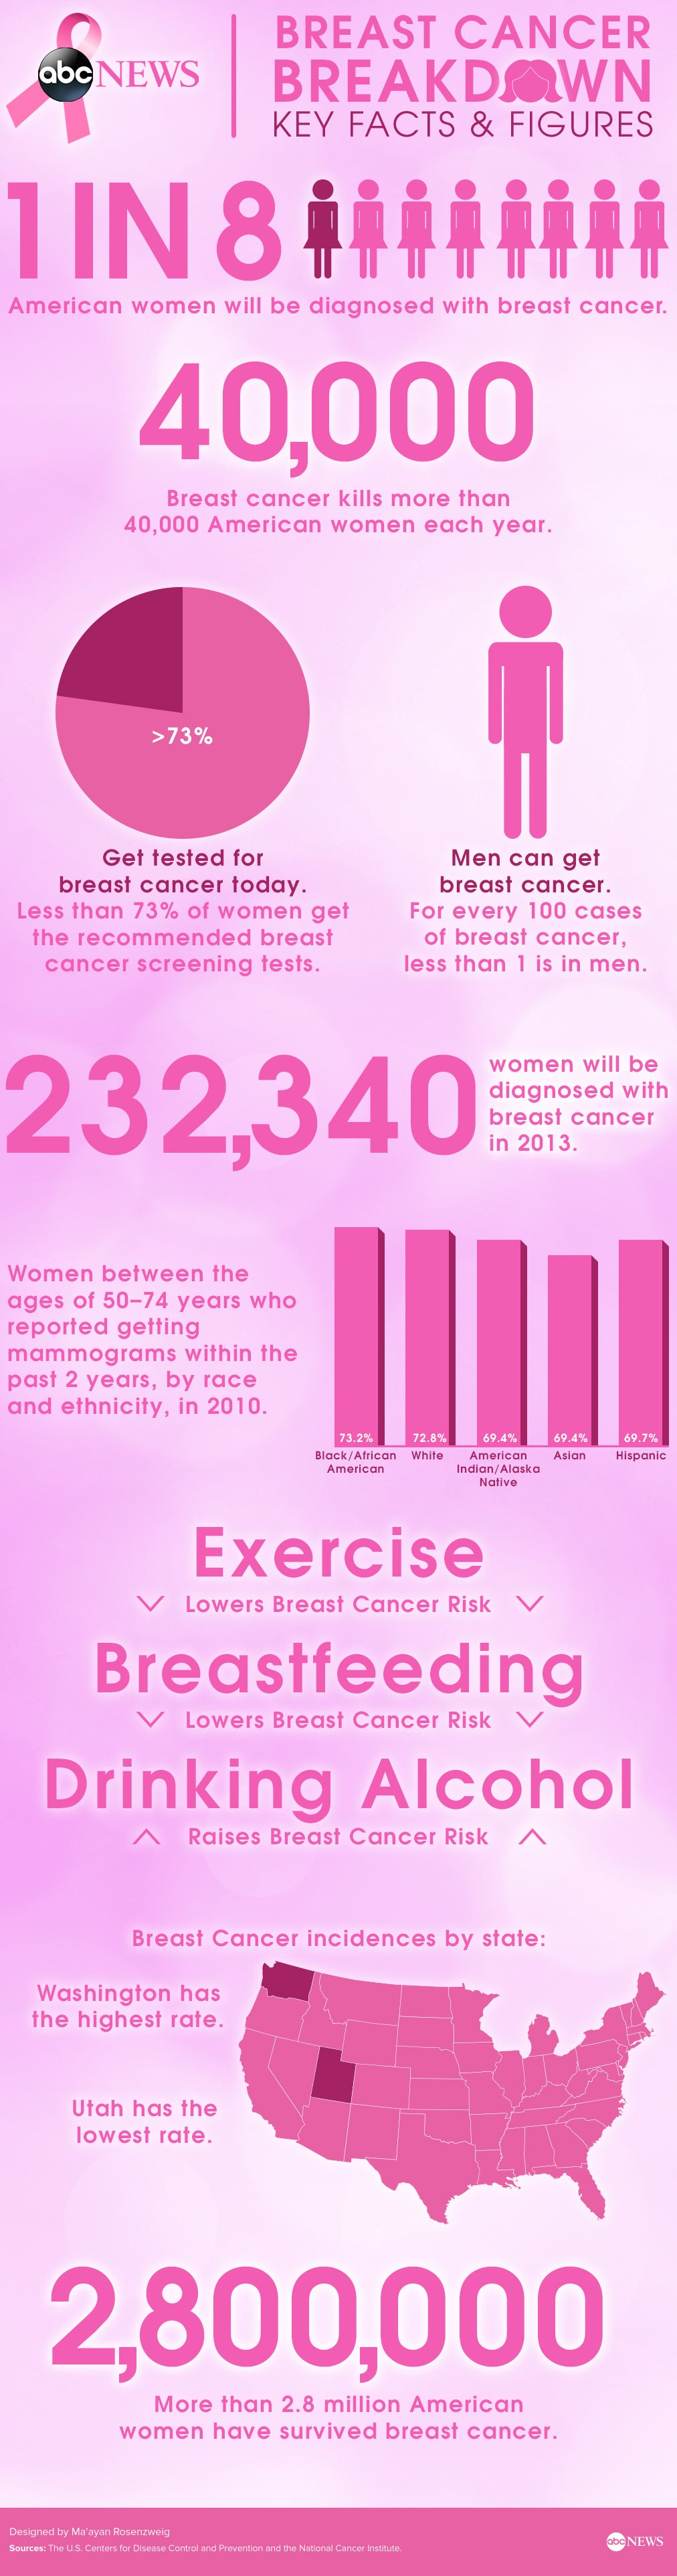 abc_news_goes_pink_infographic